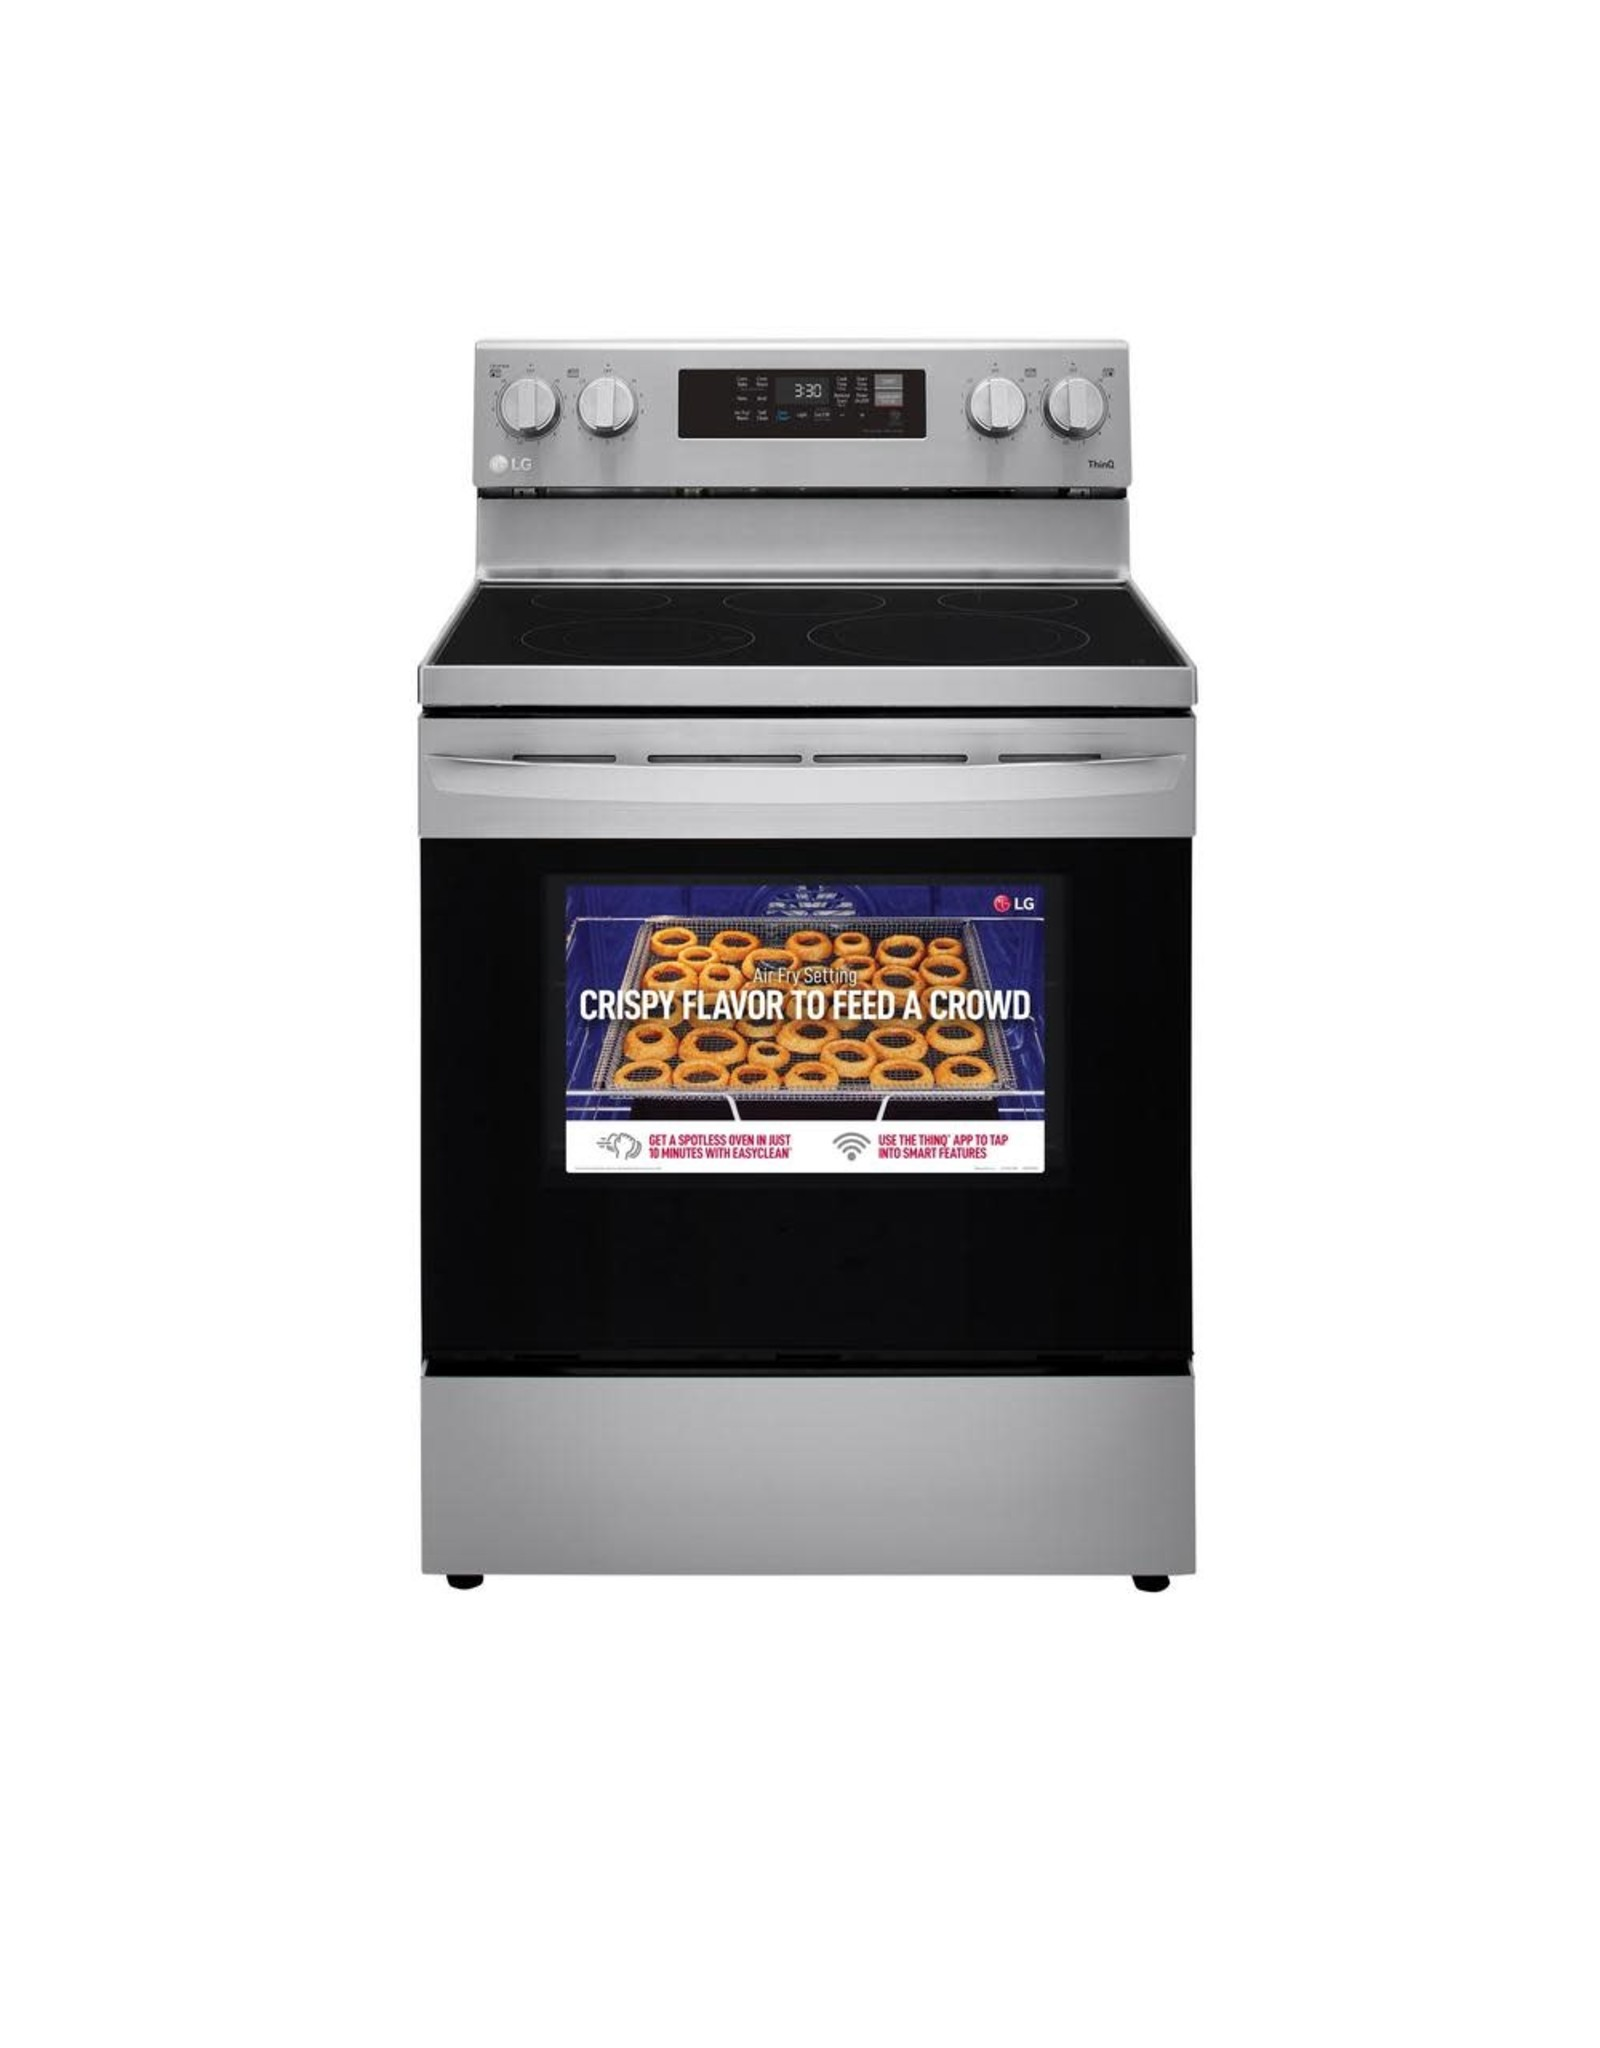 LG Electronics LREL6323S 6.3 cu. ft. Smart Wi-Fi Enabled Fan Convection Electric Oven Range with AirFry and EasyClean in Stainless Steel